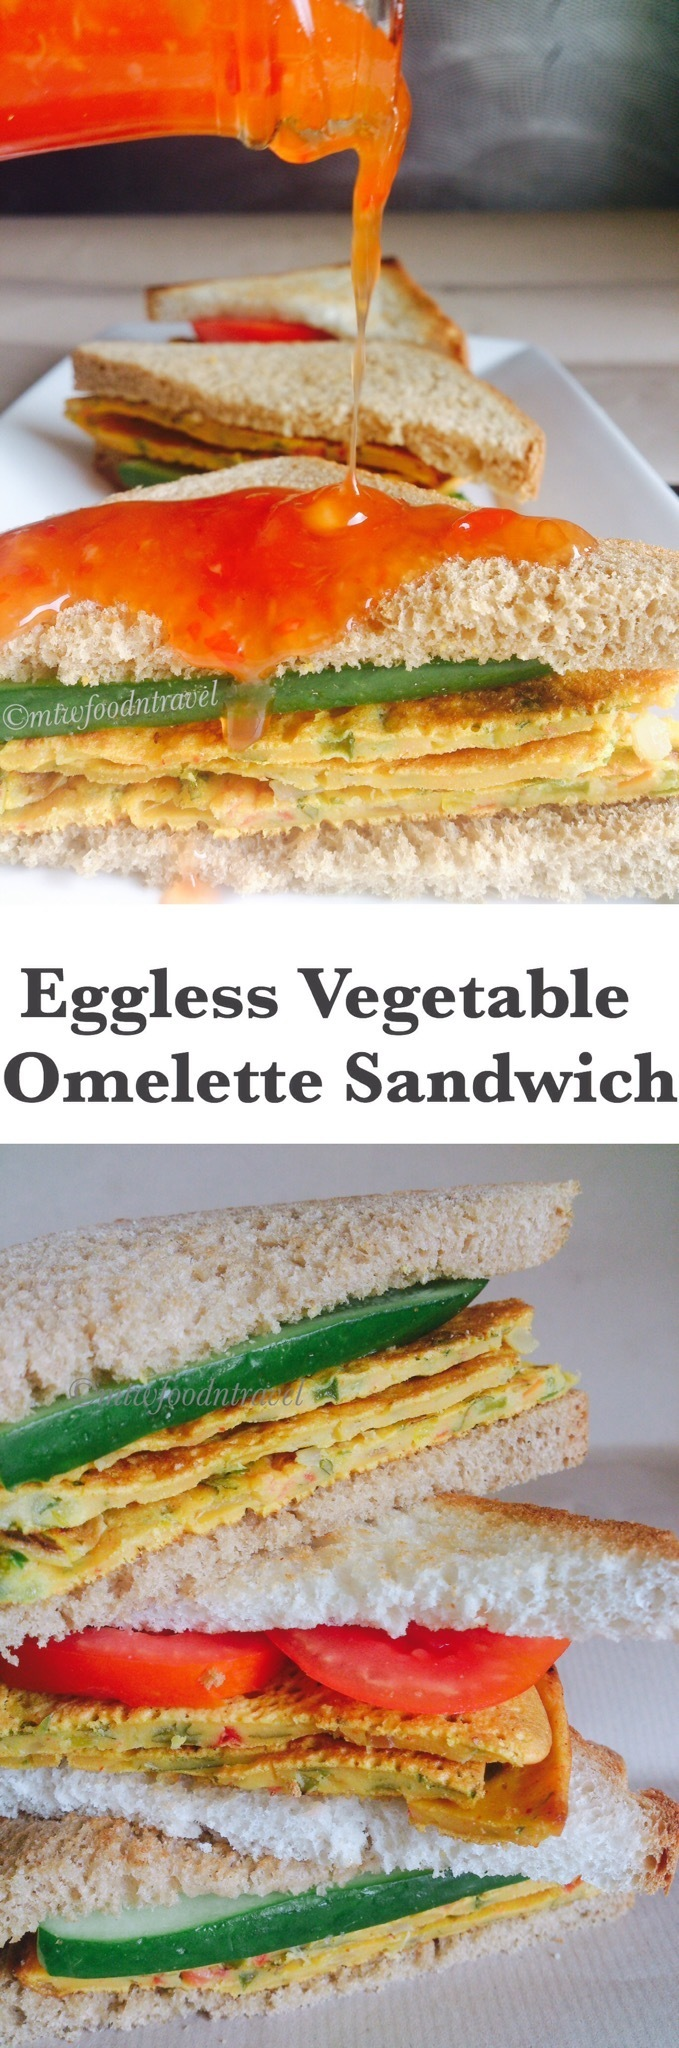 EGGLESS VEGETABLE OMELETTE SANDWICH - HEALTHY KICK START TO YOUR DAY